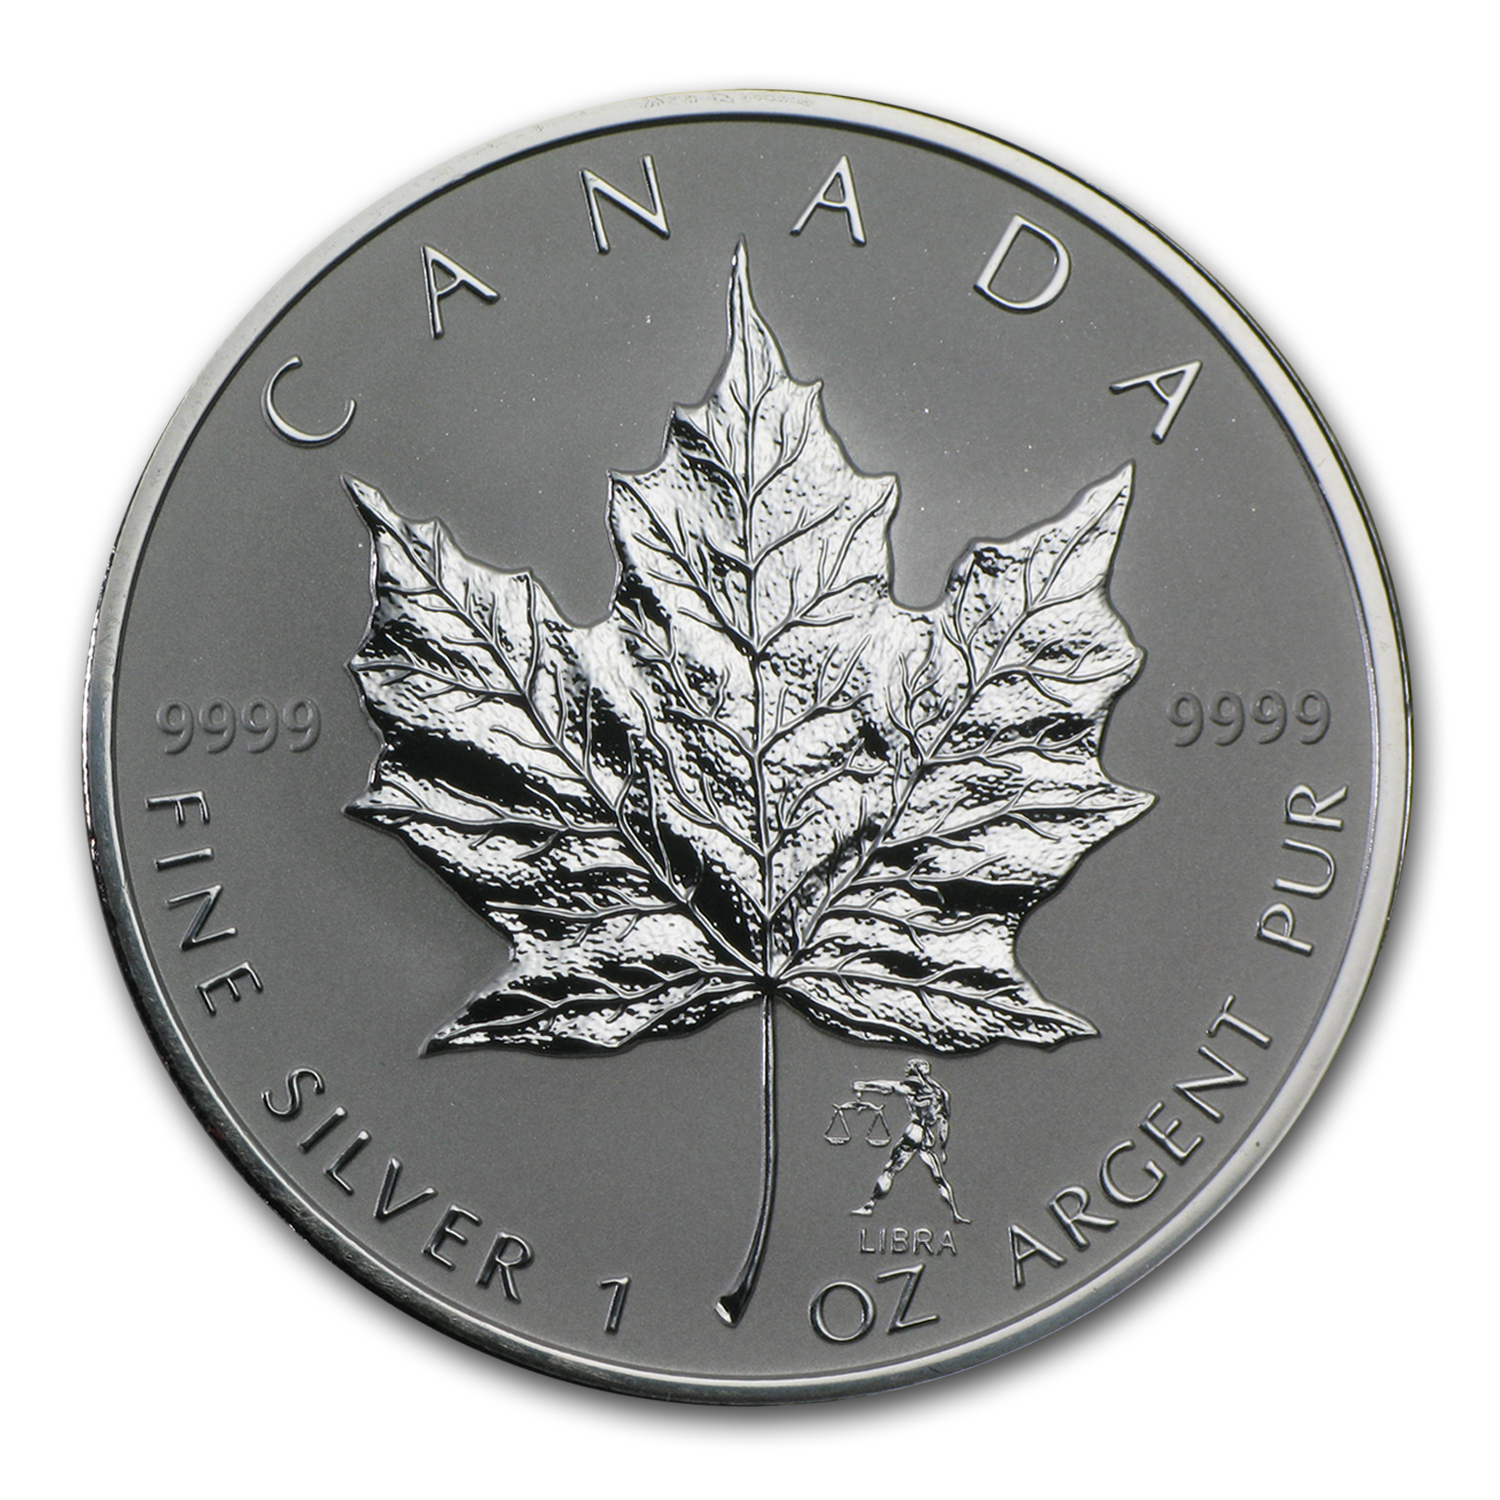 2004 Canada 1 oz Silver Maple Leaf Libra Zodiac Privy